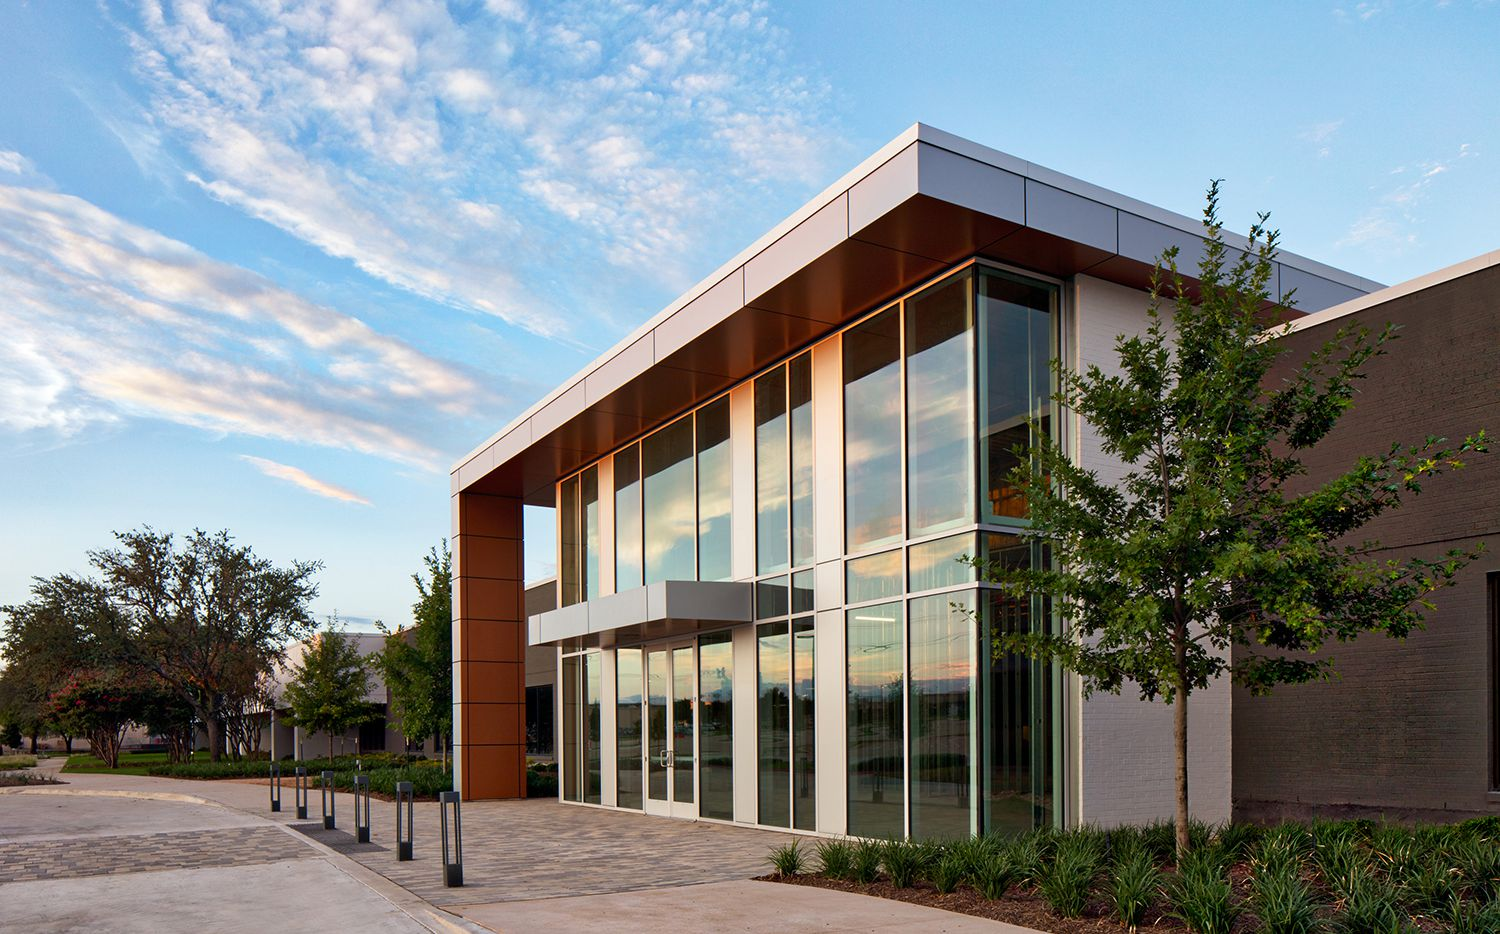 Peloton is moving a new office into the Legacy Central complex on U.S. Highway 75 in Plano.